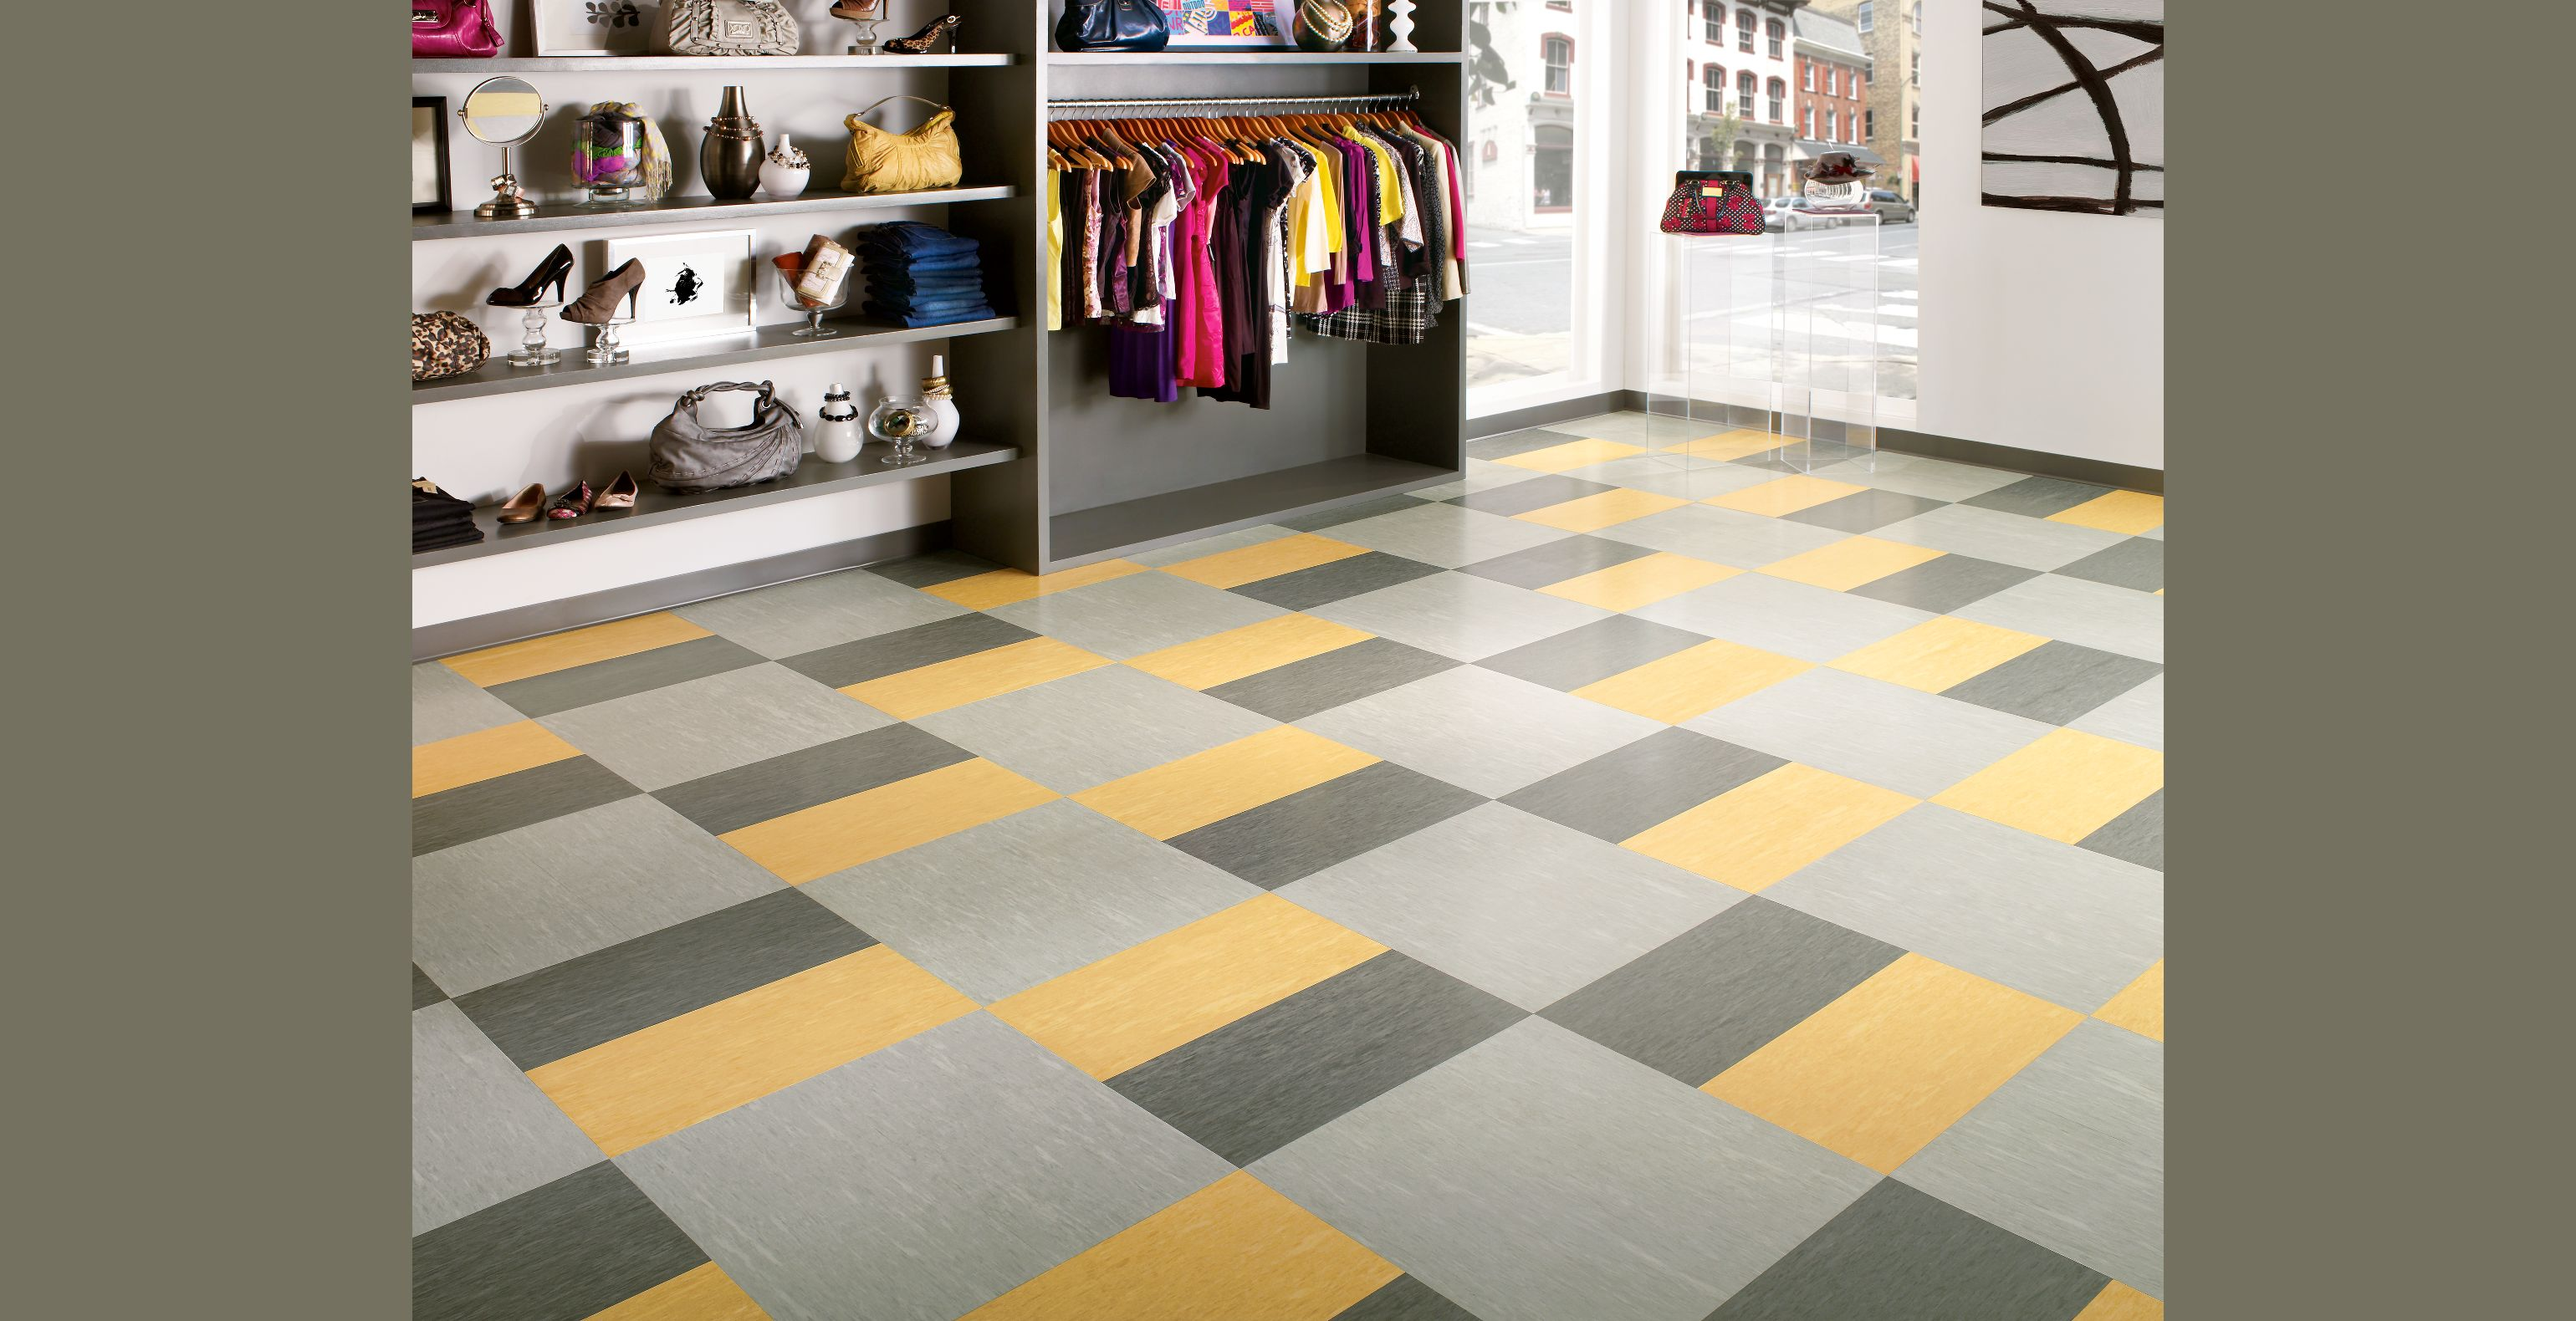 Commercial Vinyl Tiles Dubai Carpet Dubai